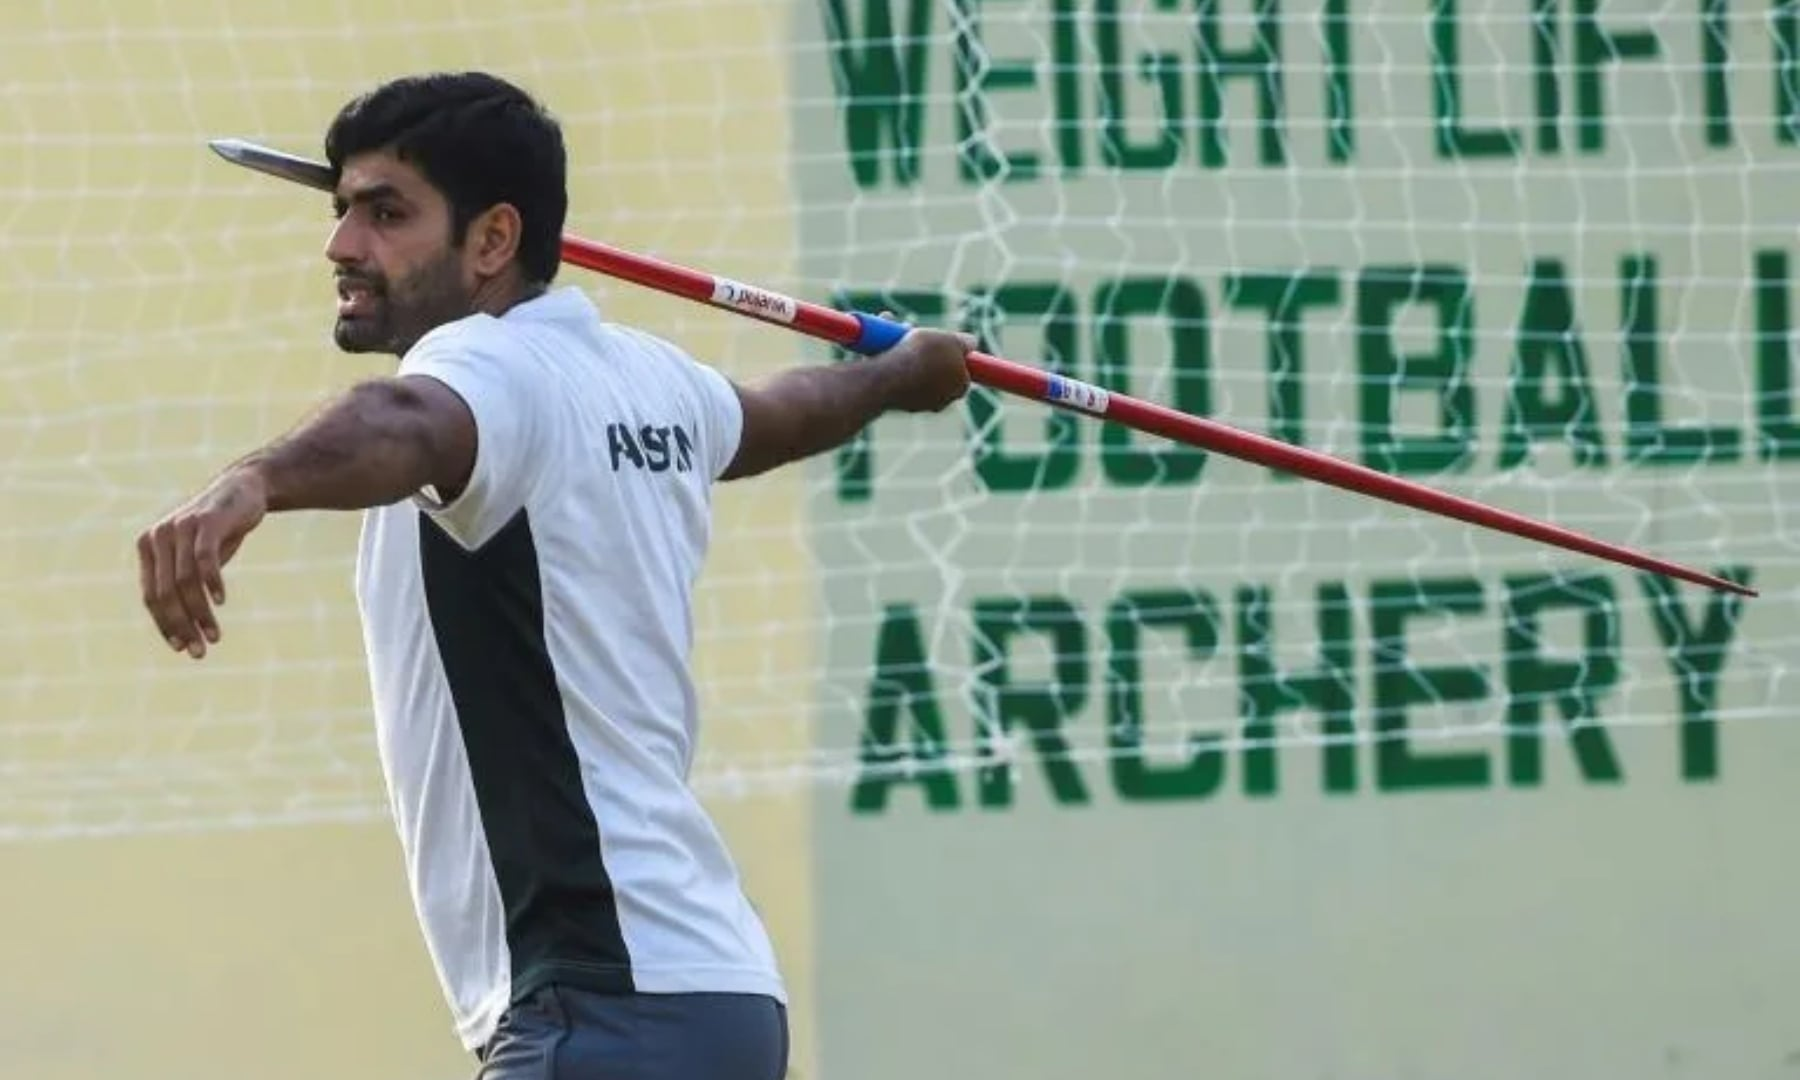 Arshad Nadeem practices the javelin throw during a training session in Lahore, June 2, 2021. — AFP